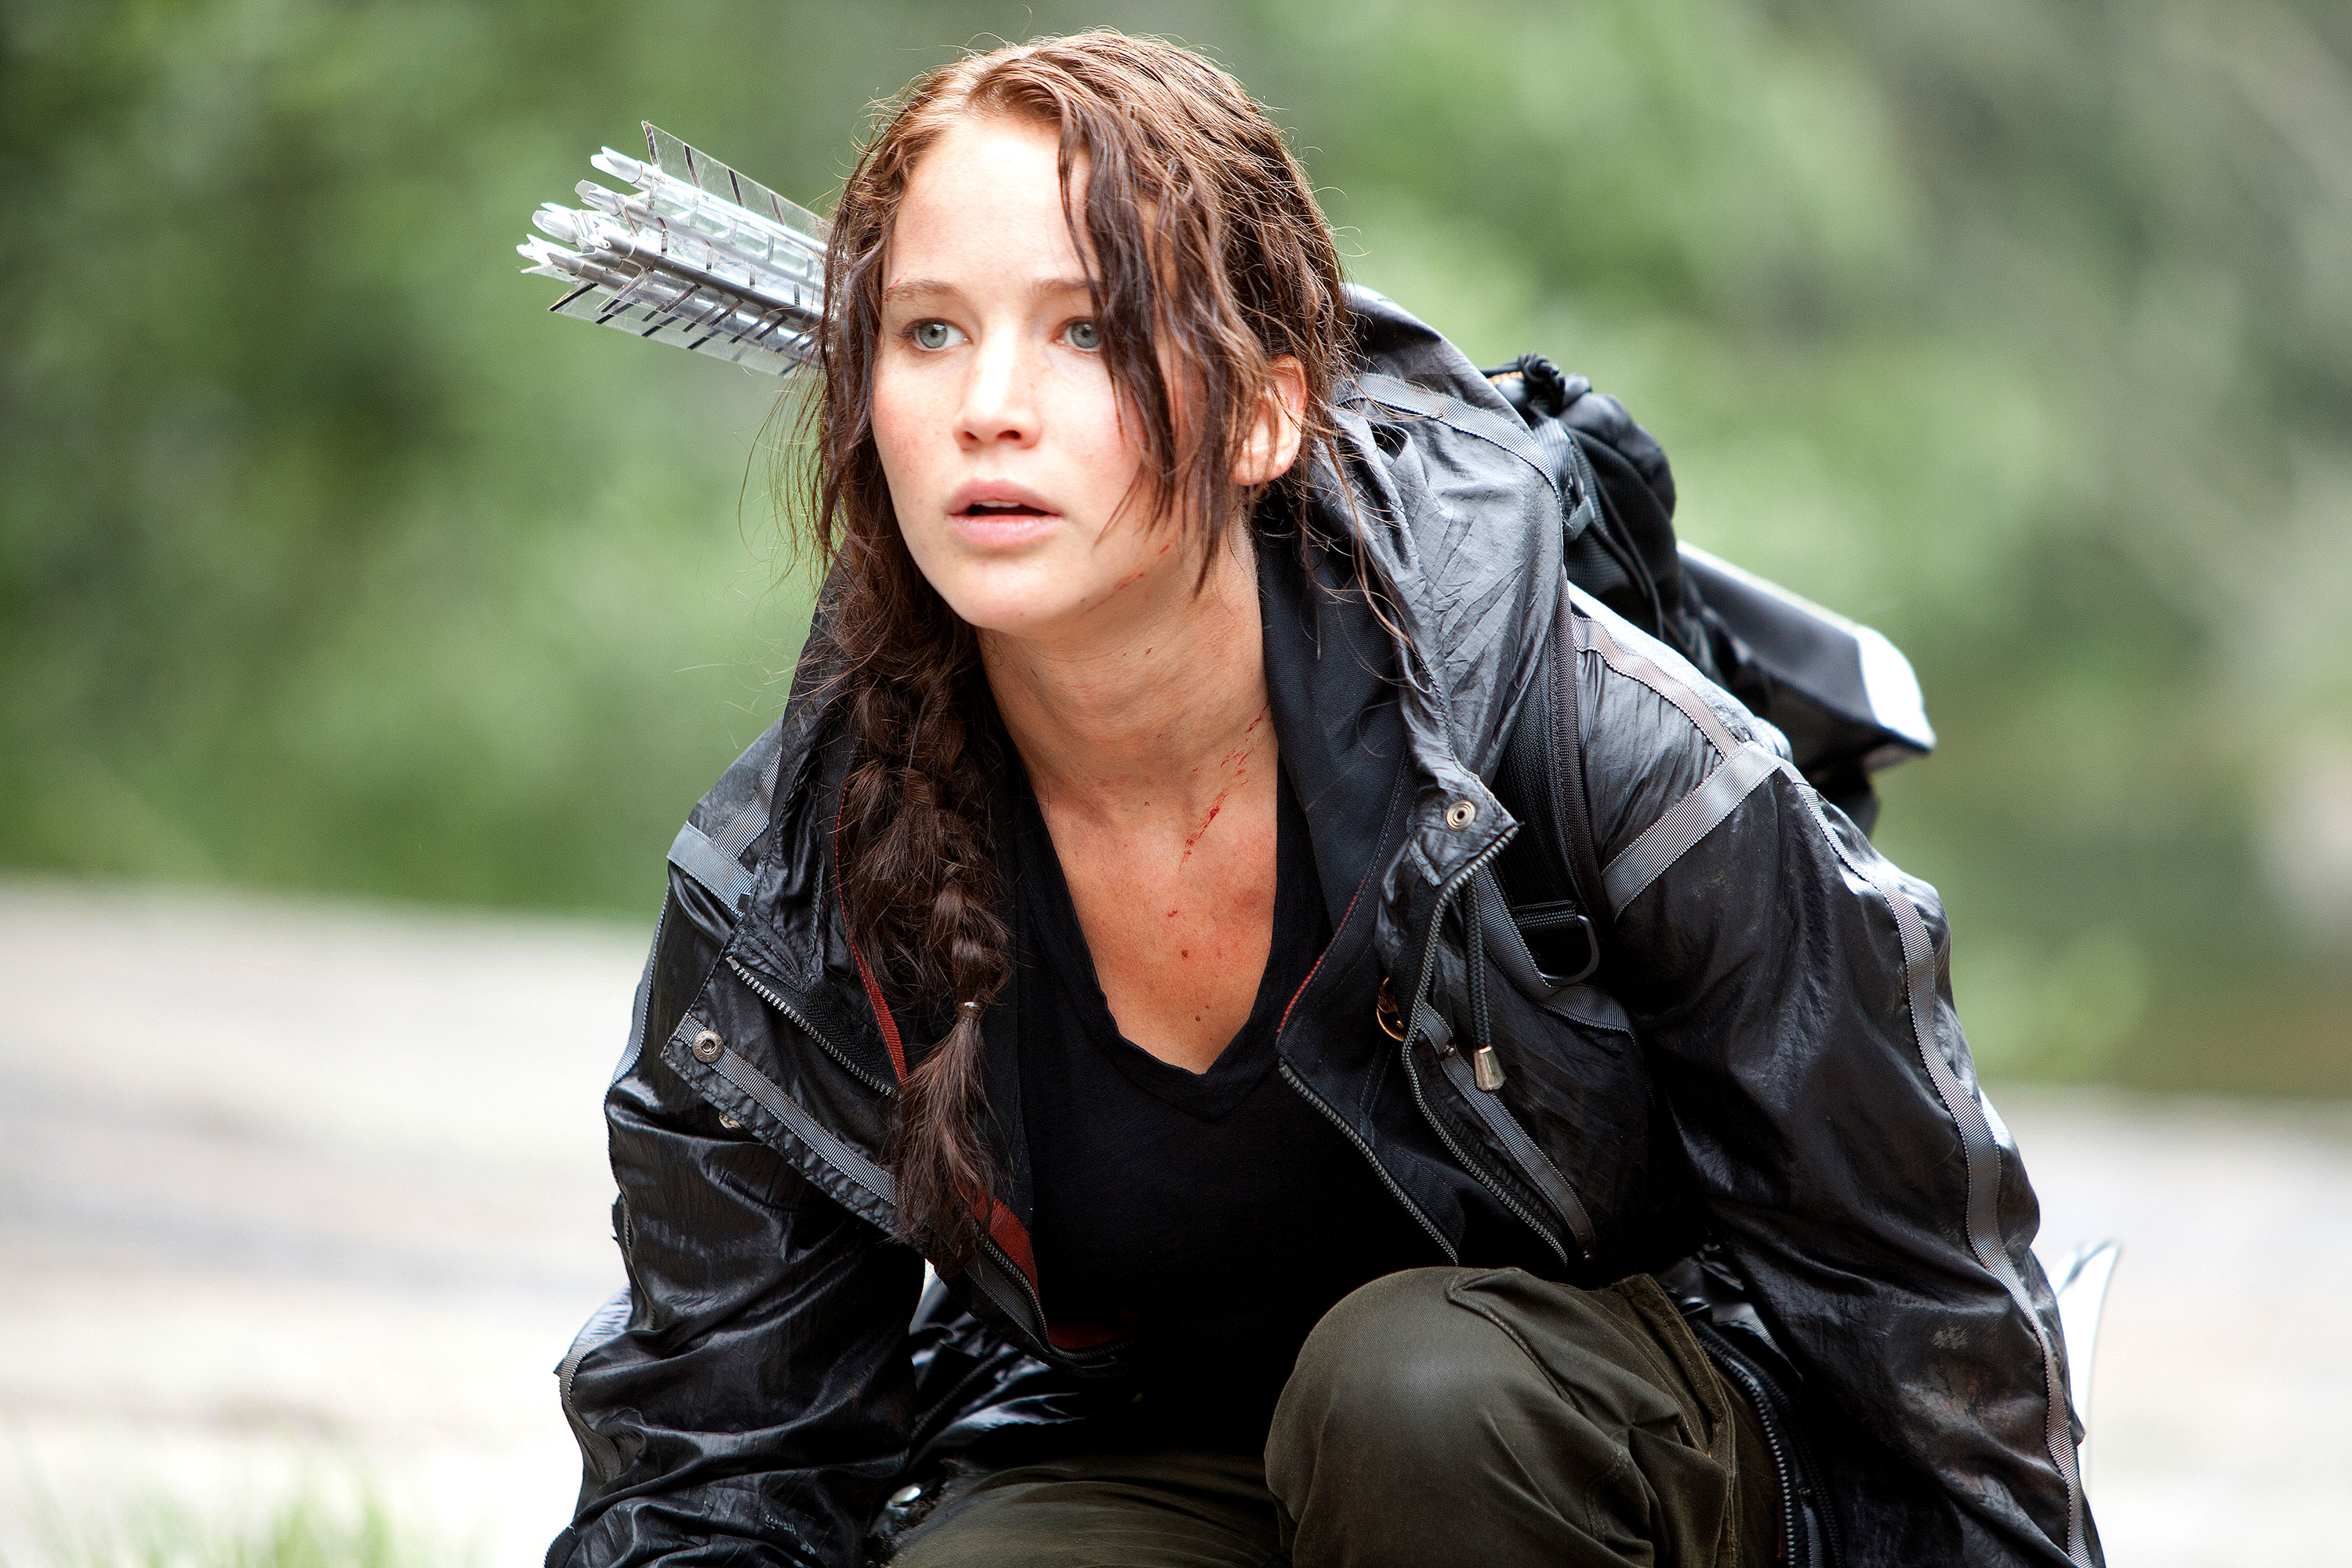 Jennifer Lawrence Admits She Took Ambien Before Filming 'Hunger Games'